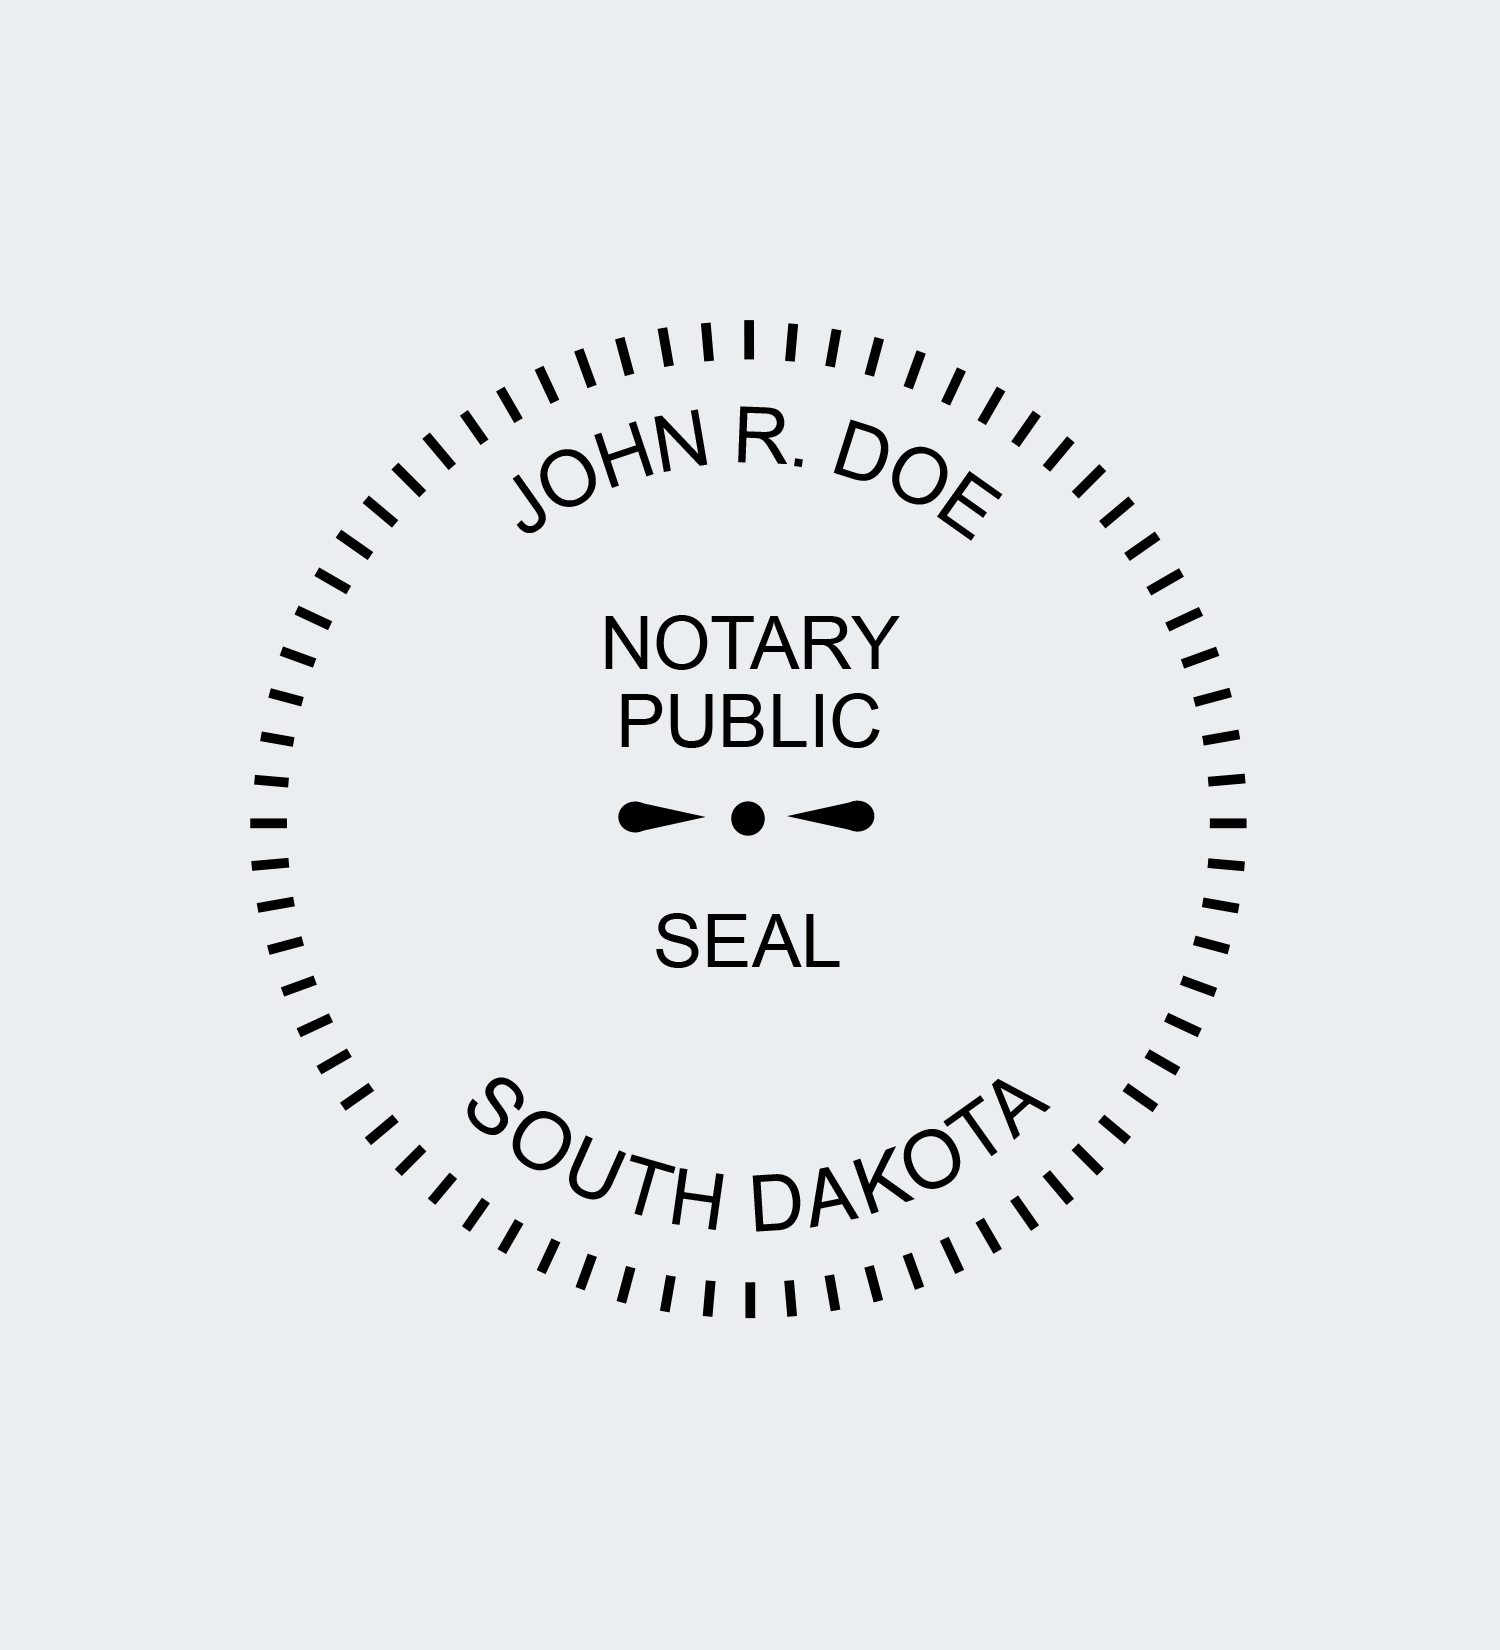 South Dakota Round Seal Stamp Impression